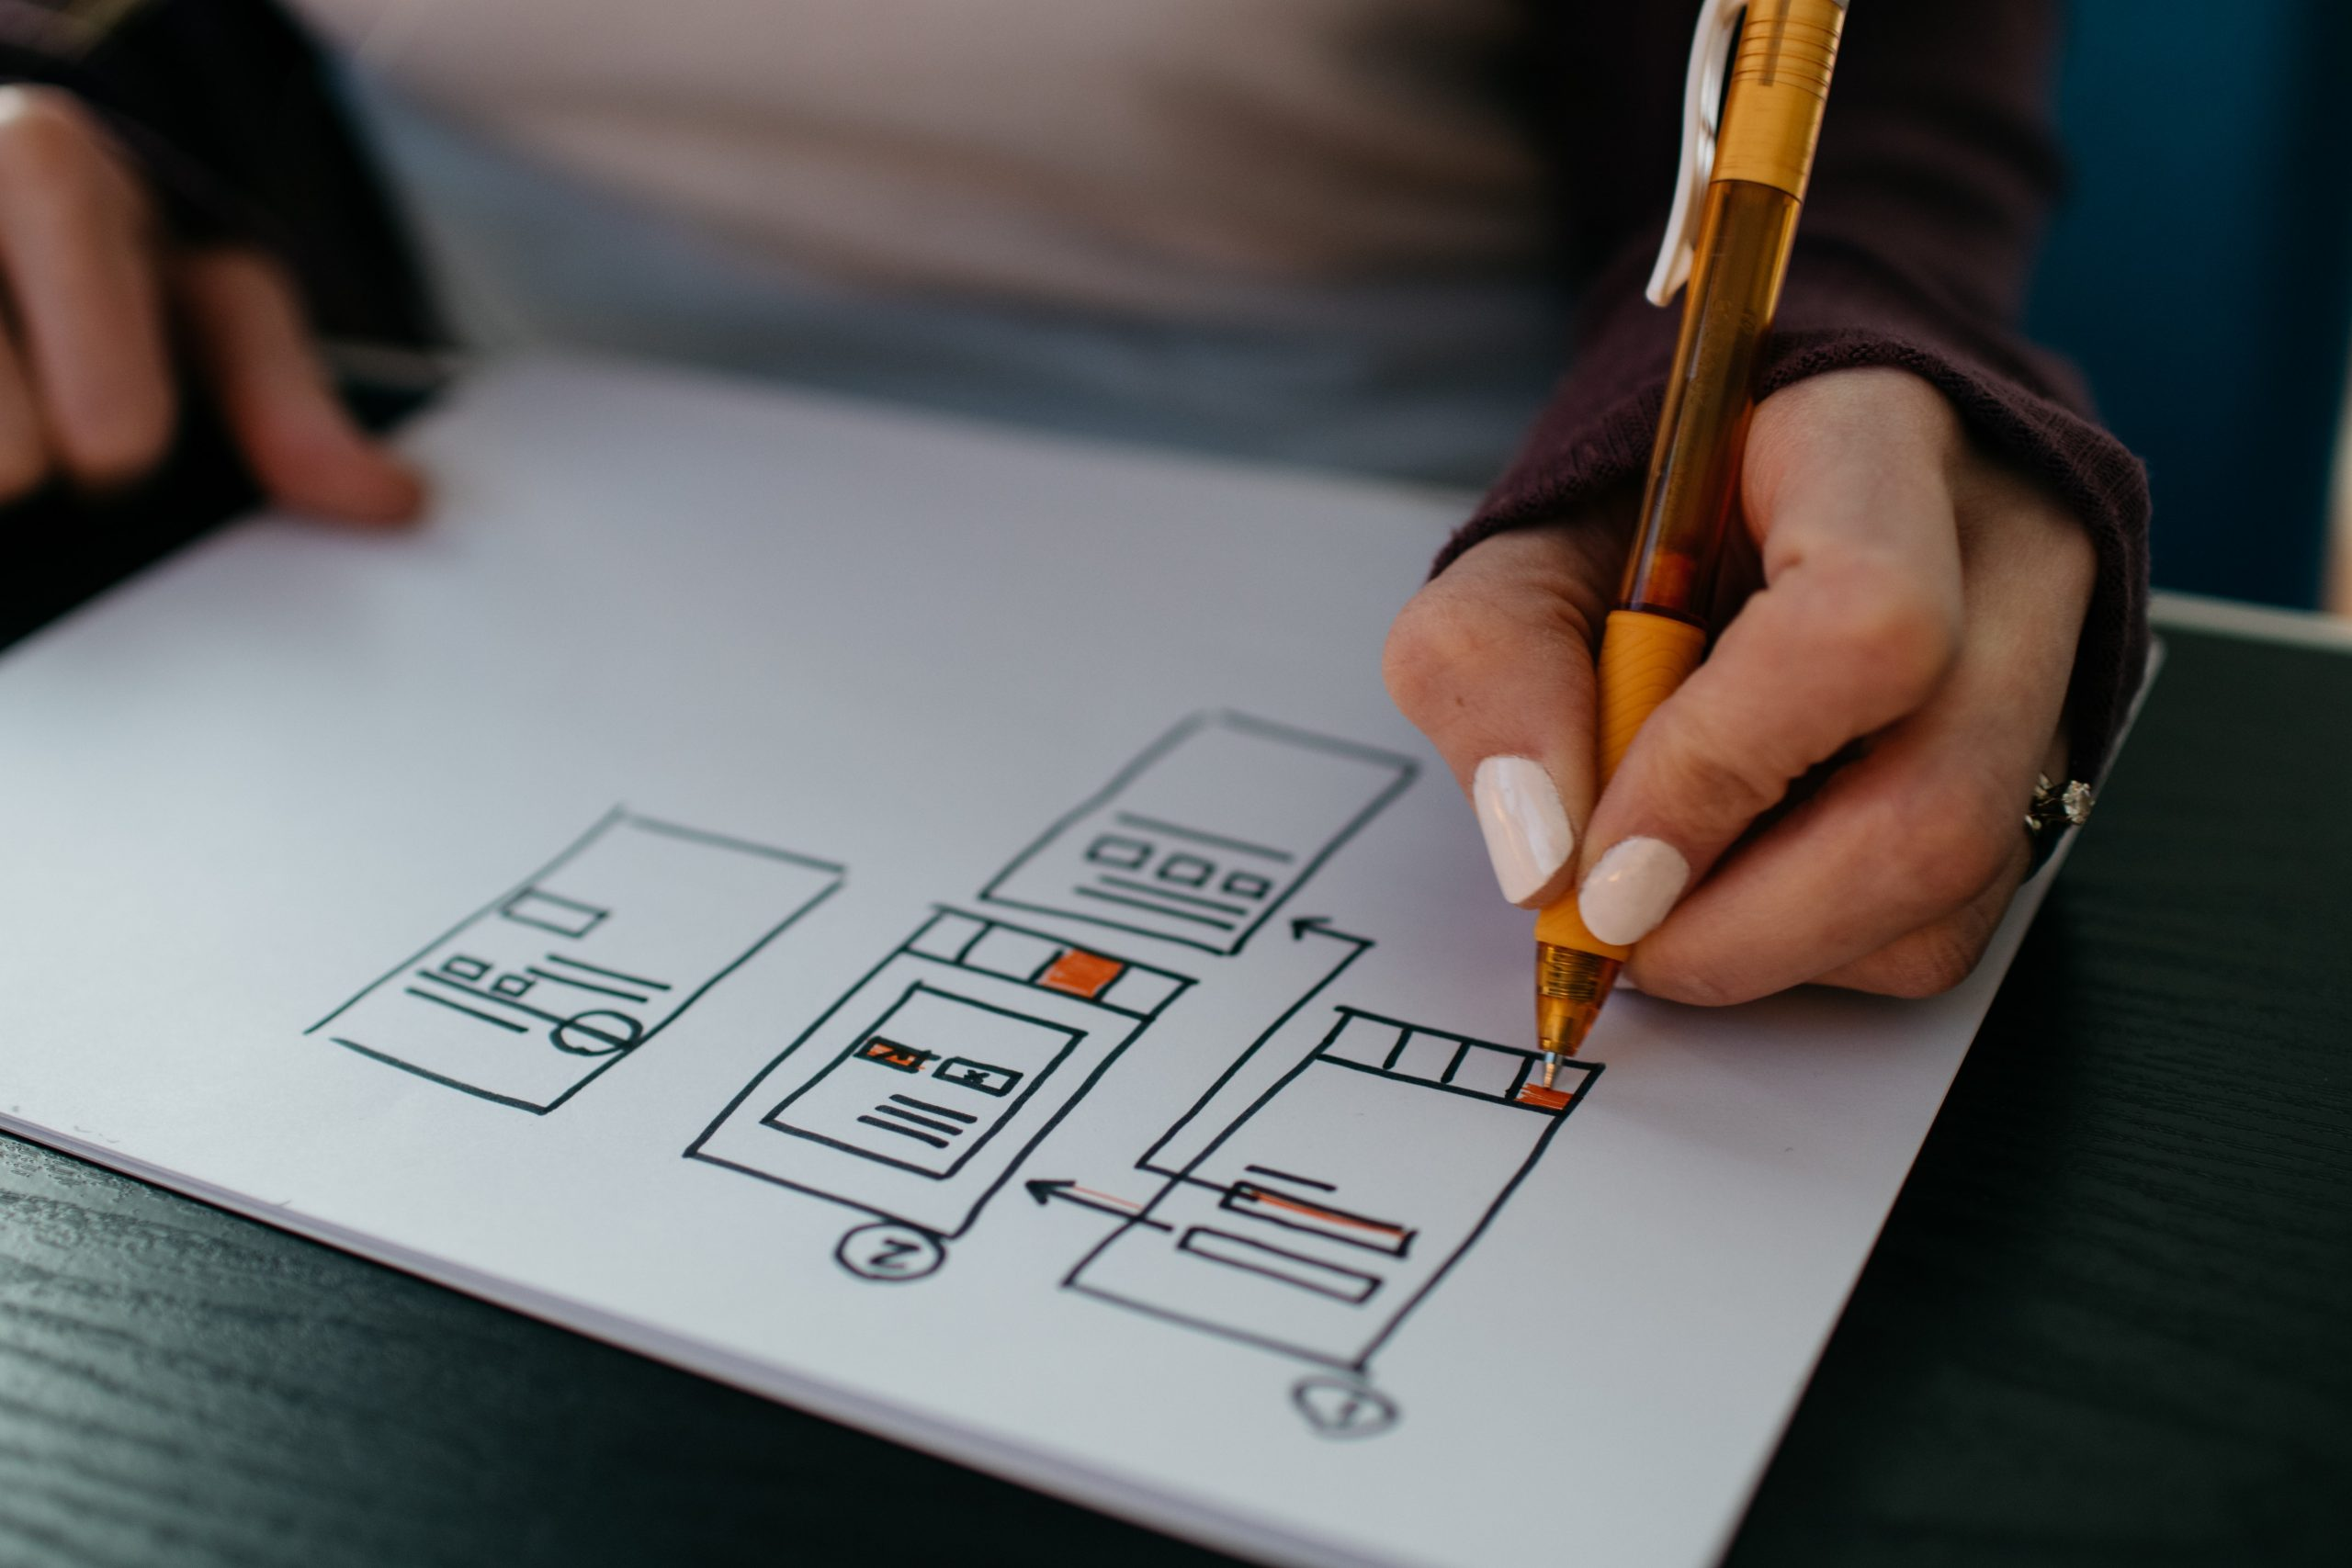 Person sketching a user interface